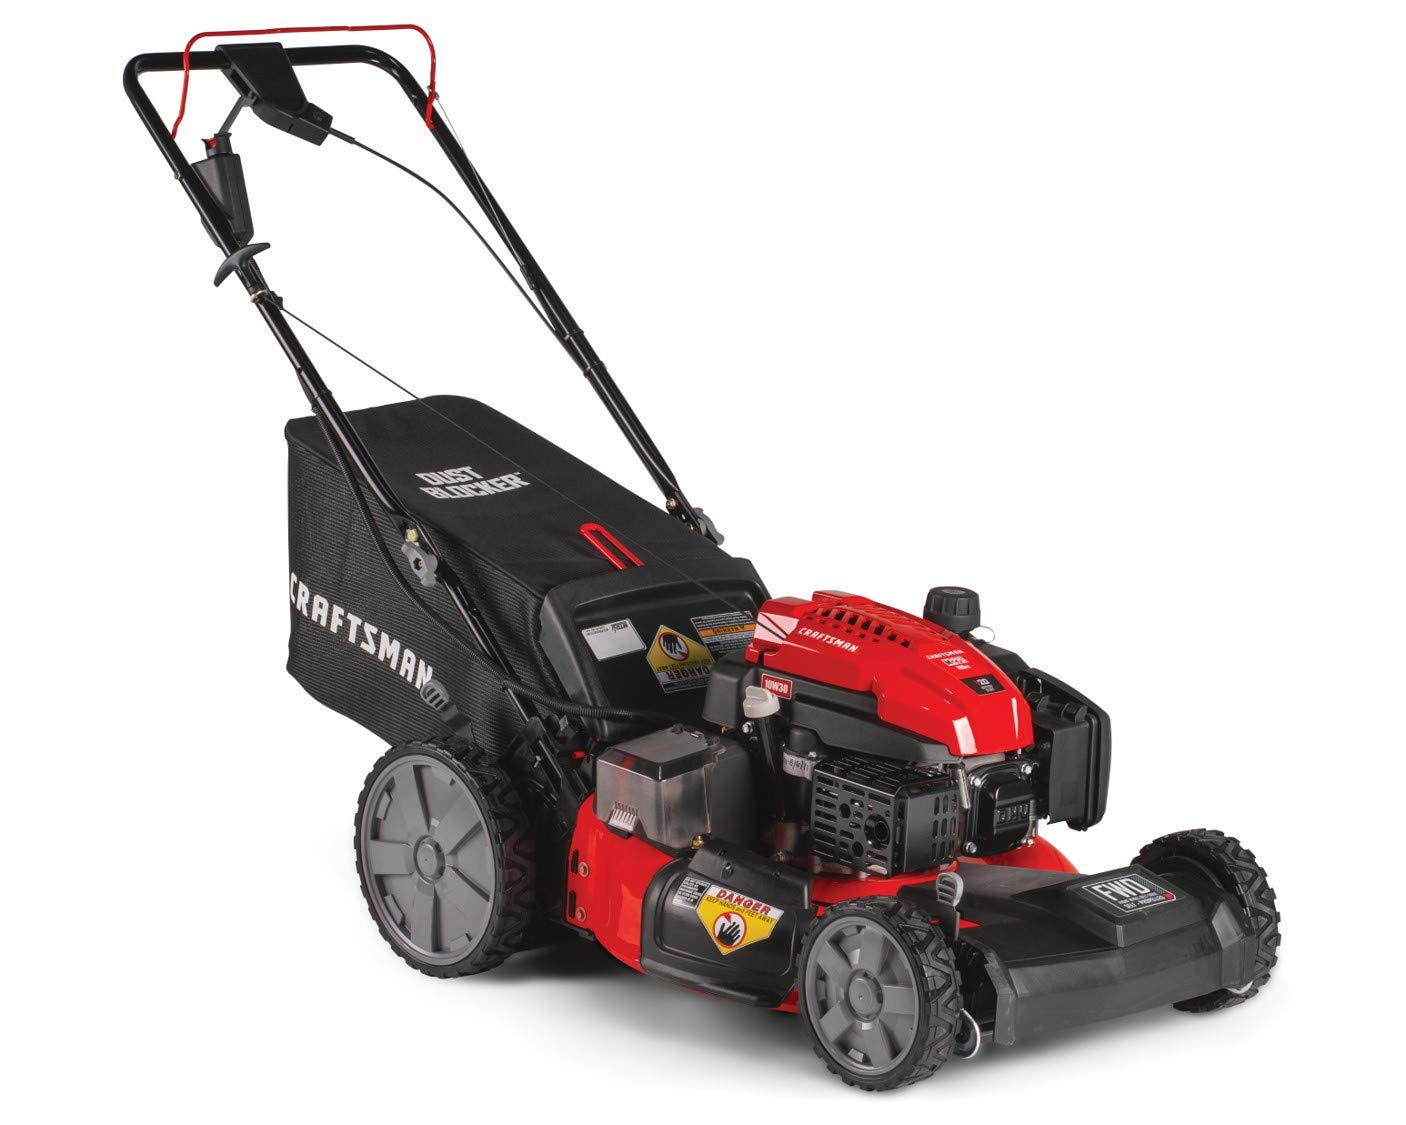 Craftsman M275 159cc 21-Inch 3-in-1 High-Wheeled  Self-Propelled FWD Gas Powered  Lawn Mower with Bagger 2 POWERFUL 159CC OHV GAS ENGINE: Powerful gas engine with 21-inch cutting deck to trim grass in one quick pass. 3-IN-1 CAPABILITIES: Unit has side discharge, rear discharge, and mulching capabilities. FRONT WHEEL DRIVE AND SELF-PROPELLED: Move around your yard with less effort at the propulsion speed of your choice.